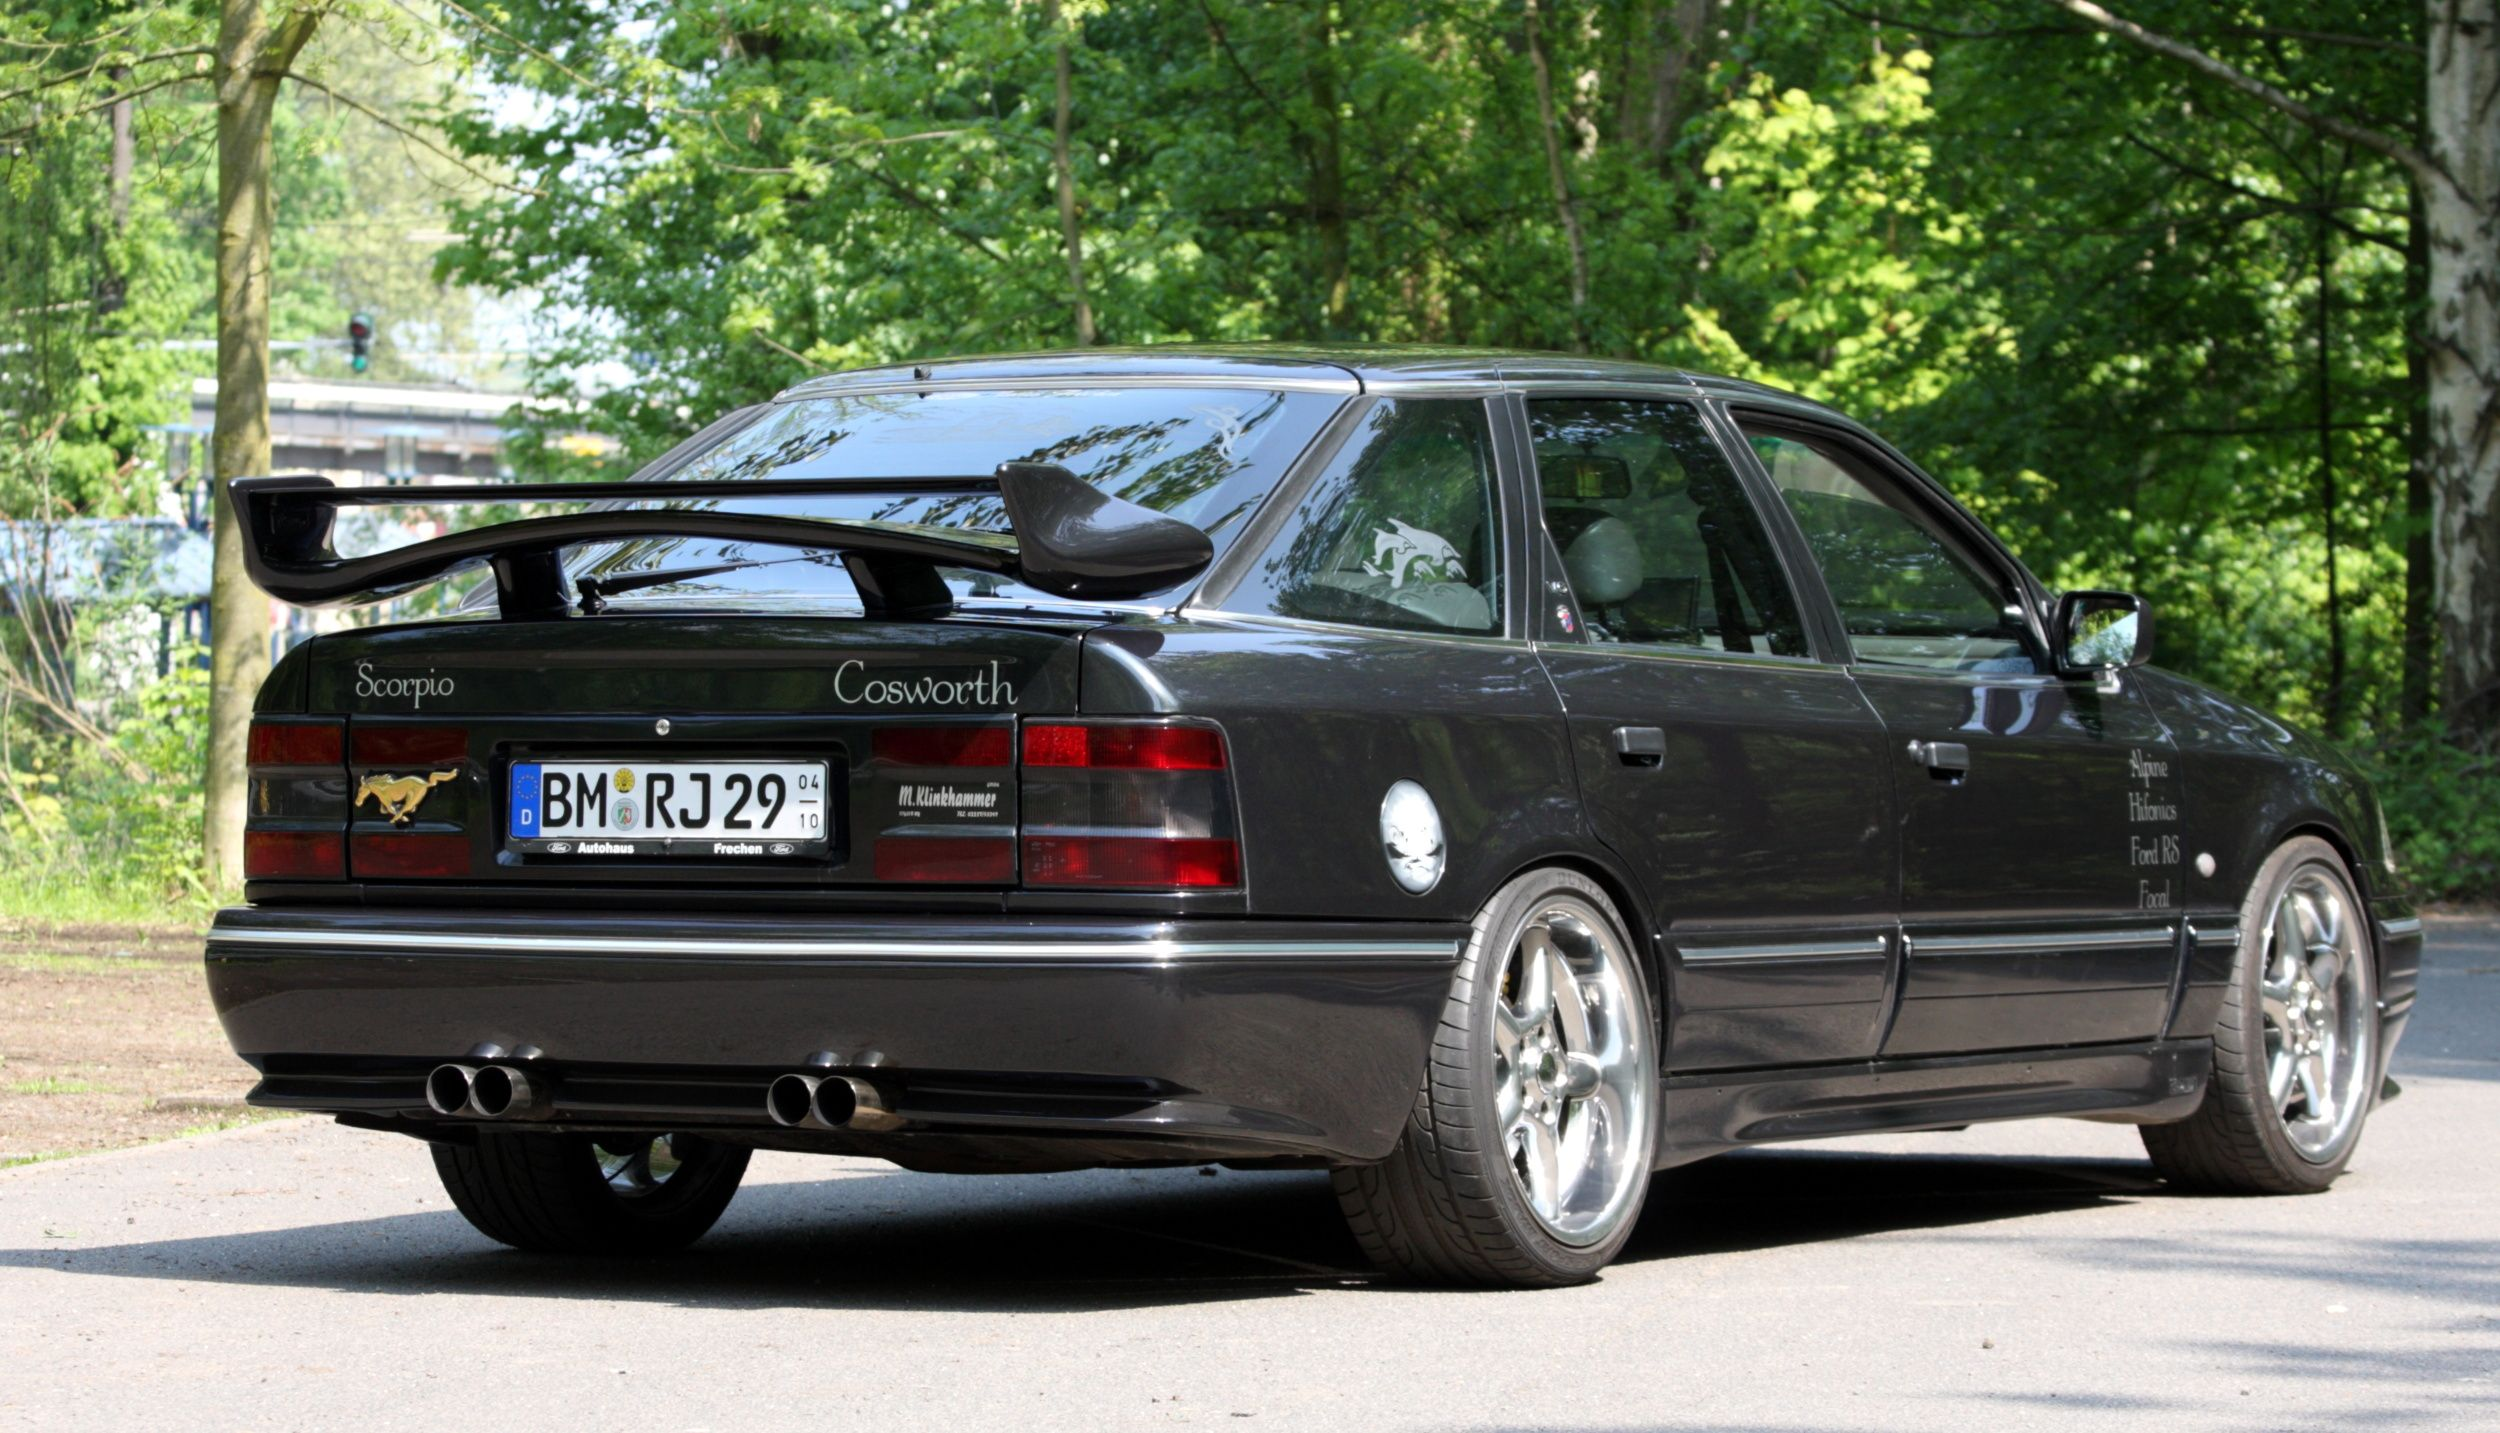 ford scorpio cosworth my ultimate dream garage. Black Bedroom Furniture Sets. Home Design Ideas